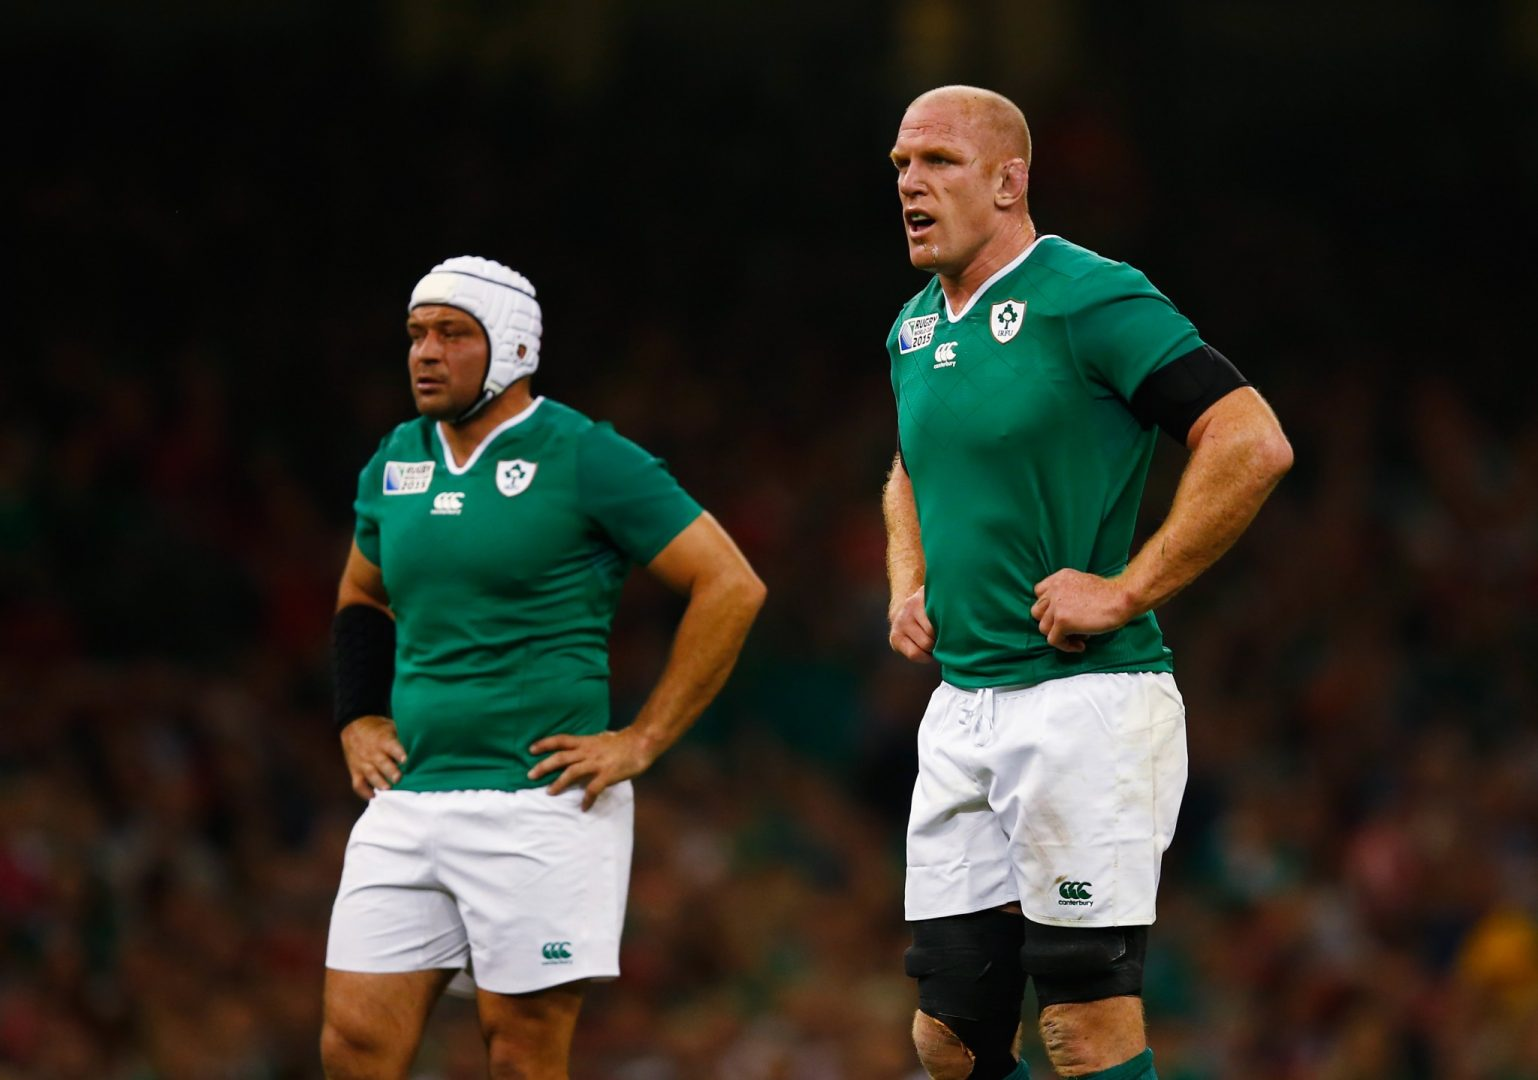 Rory Best replaces Paul O'Connell as captain of ireland